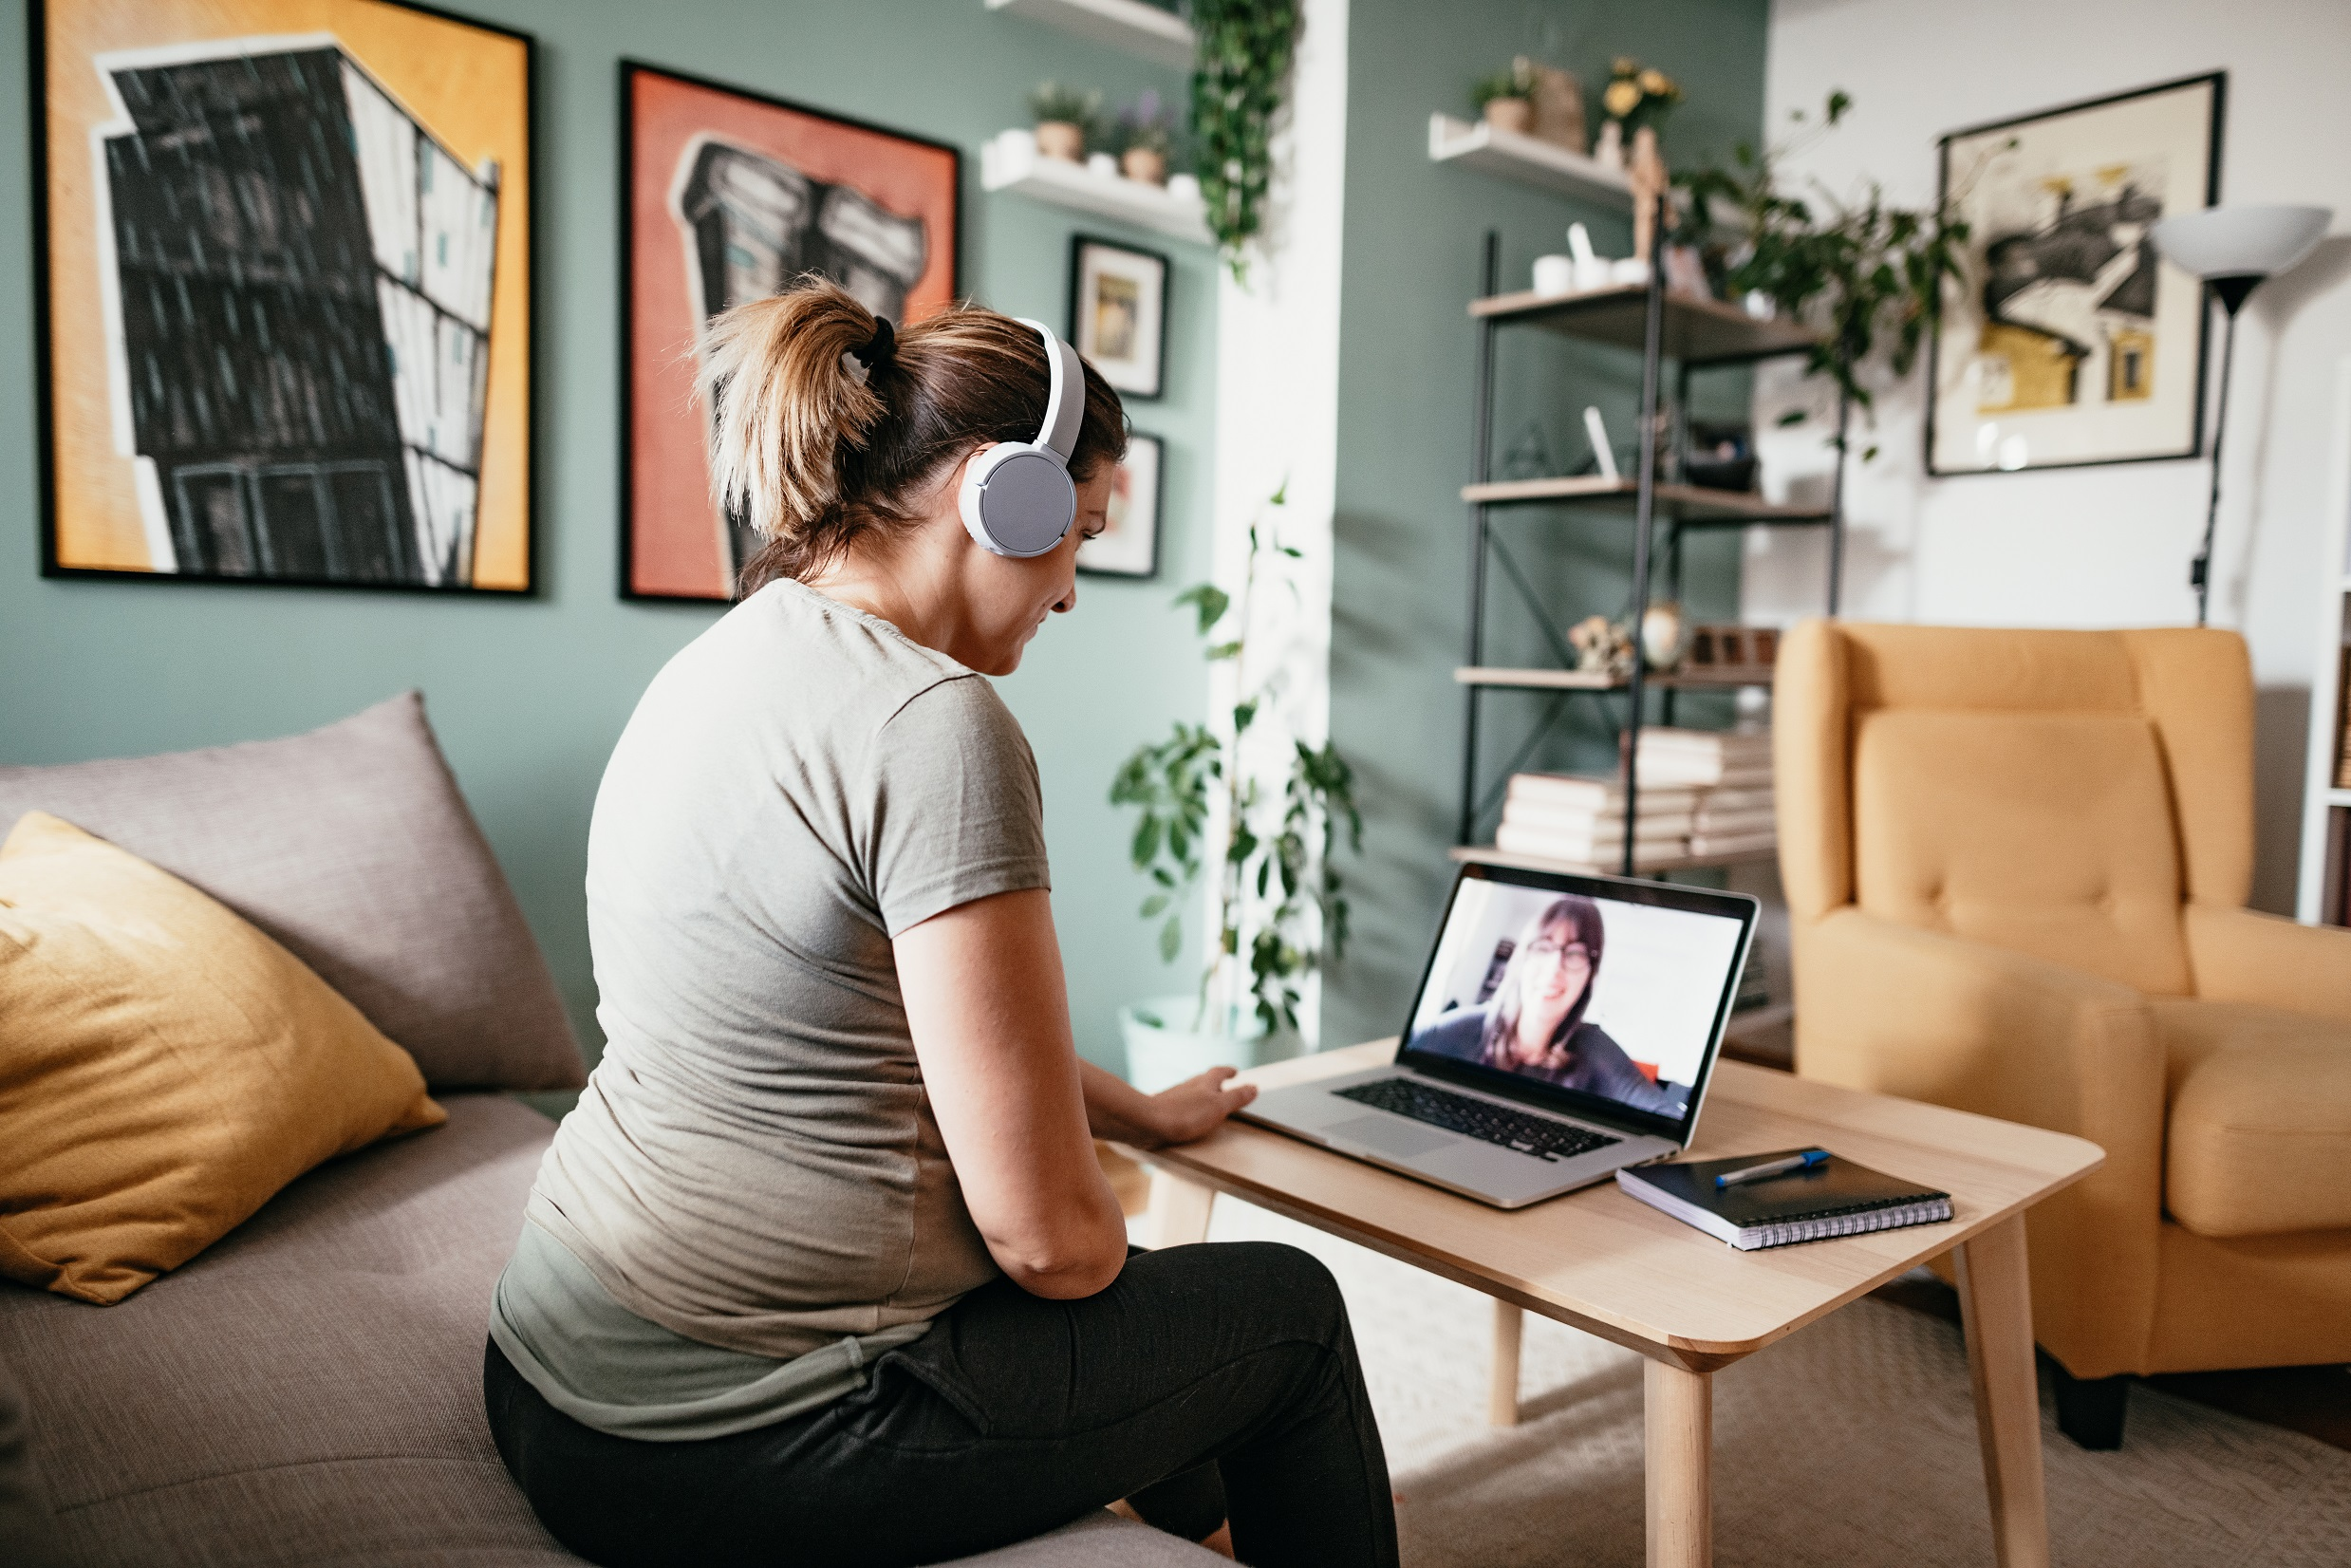 Young woman teleconferencing with friend on laptop